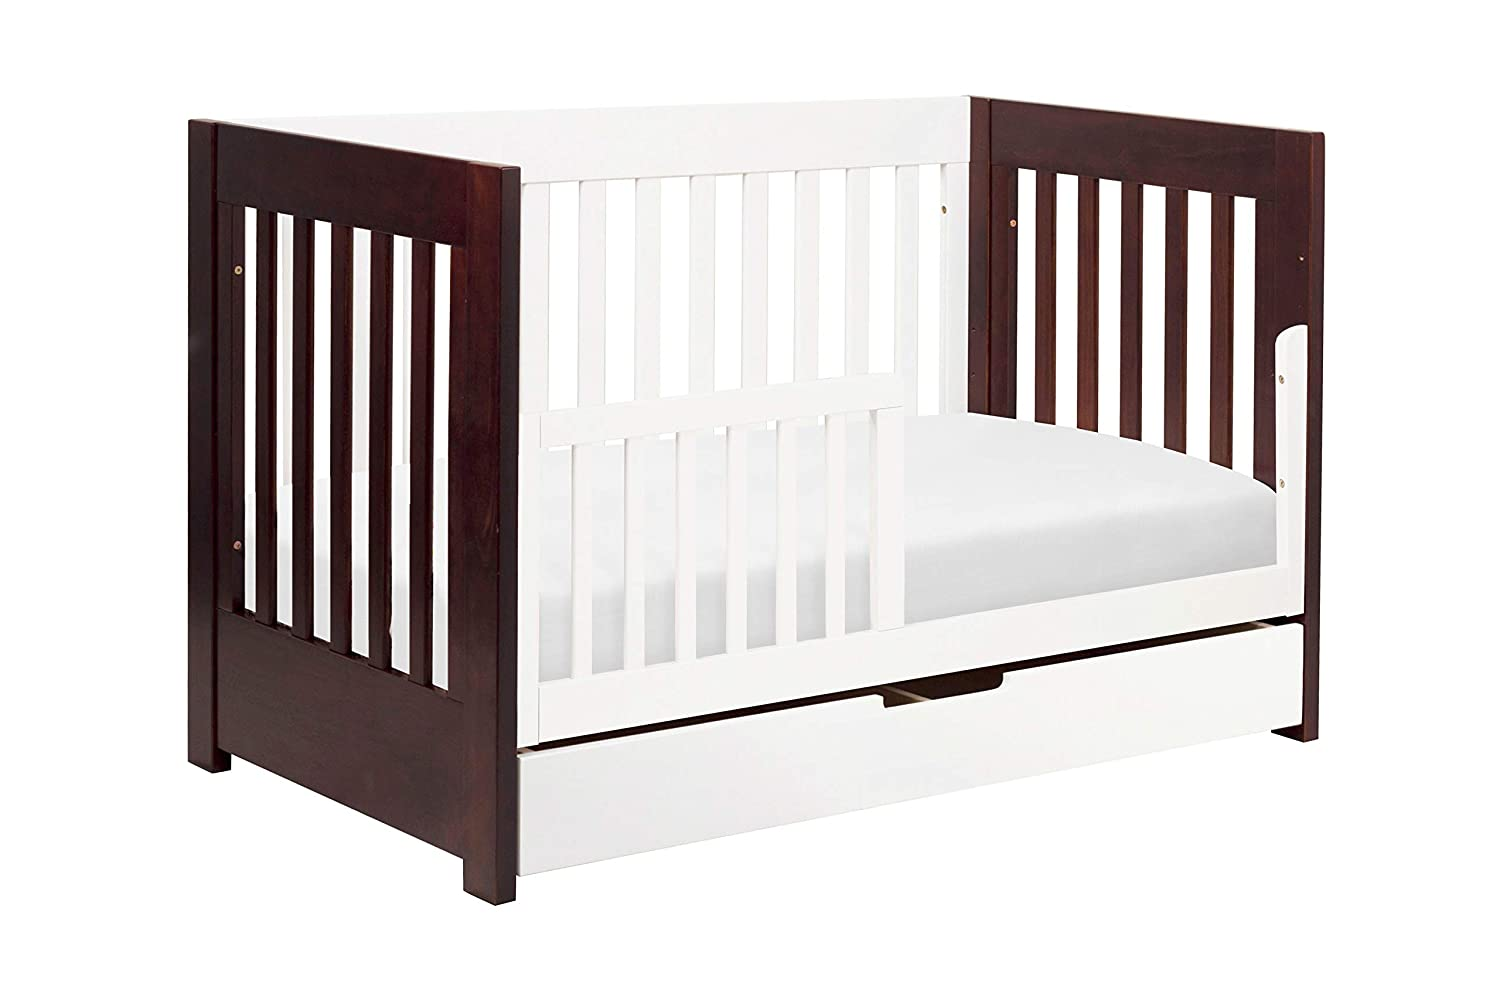 Babyletto Mercer 3-in-1 convertible crib with storage